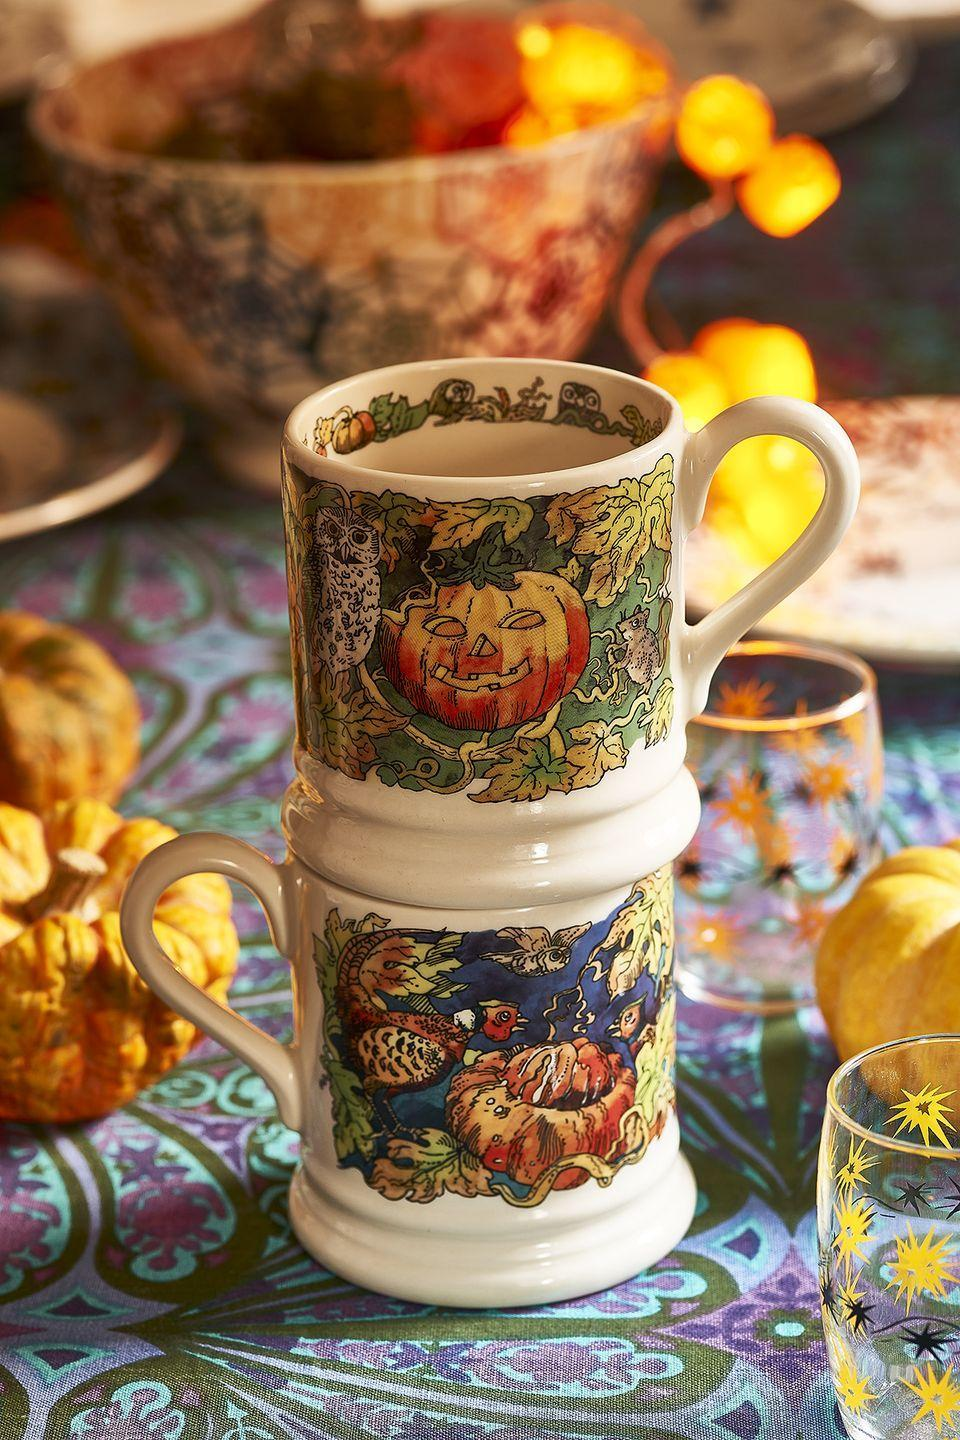 """<p>Dust off your broomstick and snap up one of the new seasonal mugs, perfect for stirring the cauldrons in style.</p><p>'This year, the classic Halloween mug (£19.95) features beautifully pumpkin jack-o-lanterns, autumn foliage and an owl.'</p><p><a class=""""link rapid-noclick-resp"""" href=""""https://go.redirectingat.com?id=127X1599956&url=https%3A%2F%2Fwww.emmabridgewater.co.uk%2Fcollections%2Fhalloween&sref=https%3A%2F%2Fwww.housebeautiful.com%2Fuk%2Flifestyle%2Fshopping%2Fg37527696%2Femma-bridgewater-autumn-range%2F"""" rel=""""nofollow noopener"""" target=""""_blank"""" data-ylk=""""slk:SHOP THE RANGE"""">SHOP THE RANGE</a></p>"""